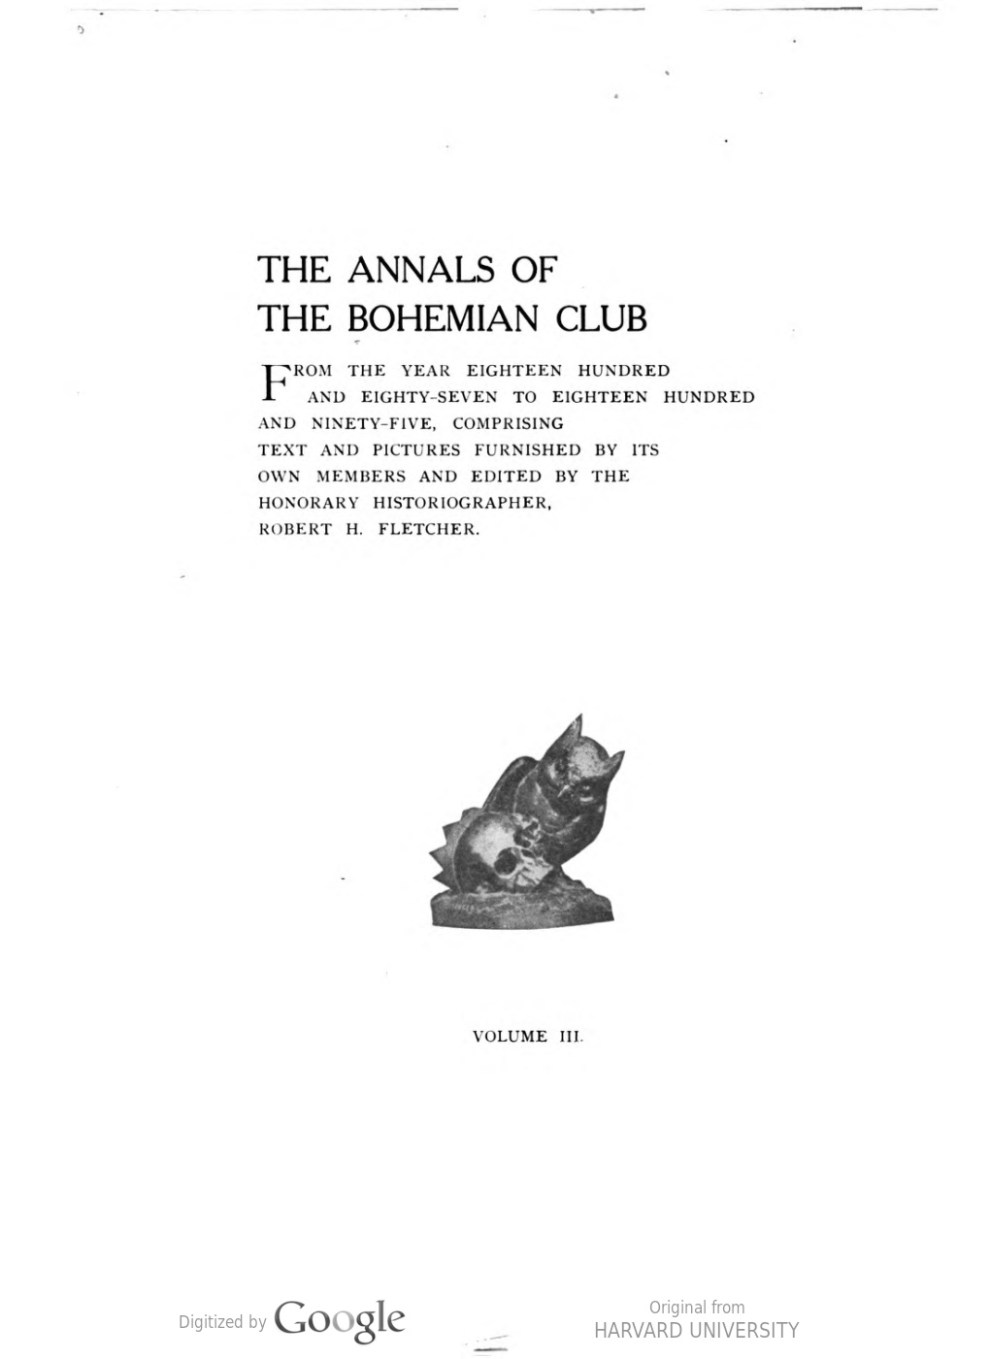 The Annals of The Bohemian Club: 1887-1895 edited by Robert H. Fletcher, 1895, volume 3, page 20, illustrated: b&w on page 21